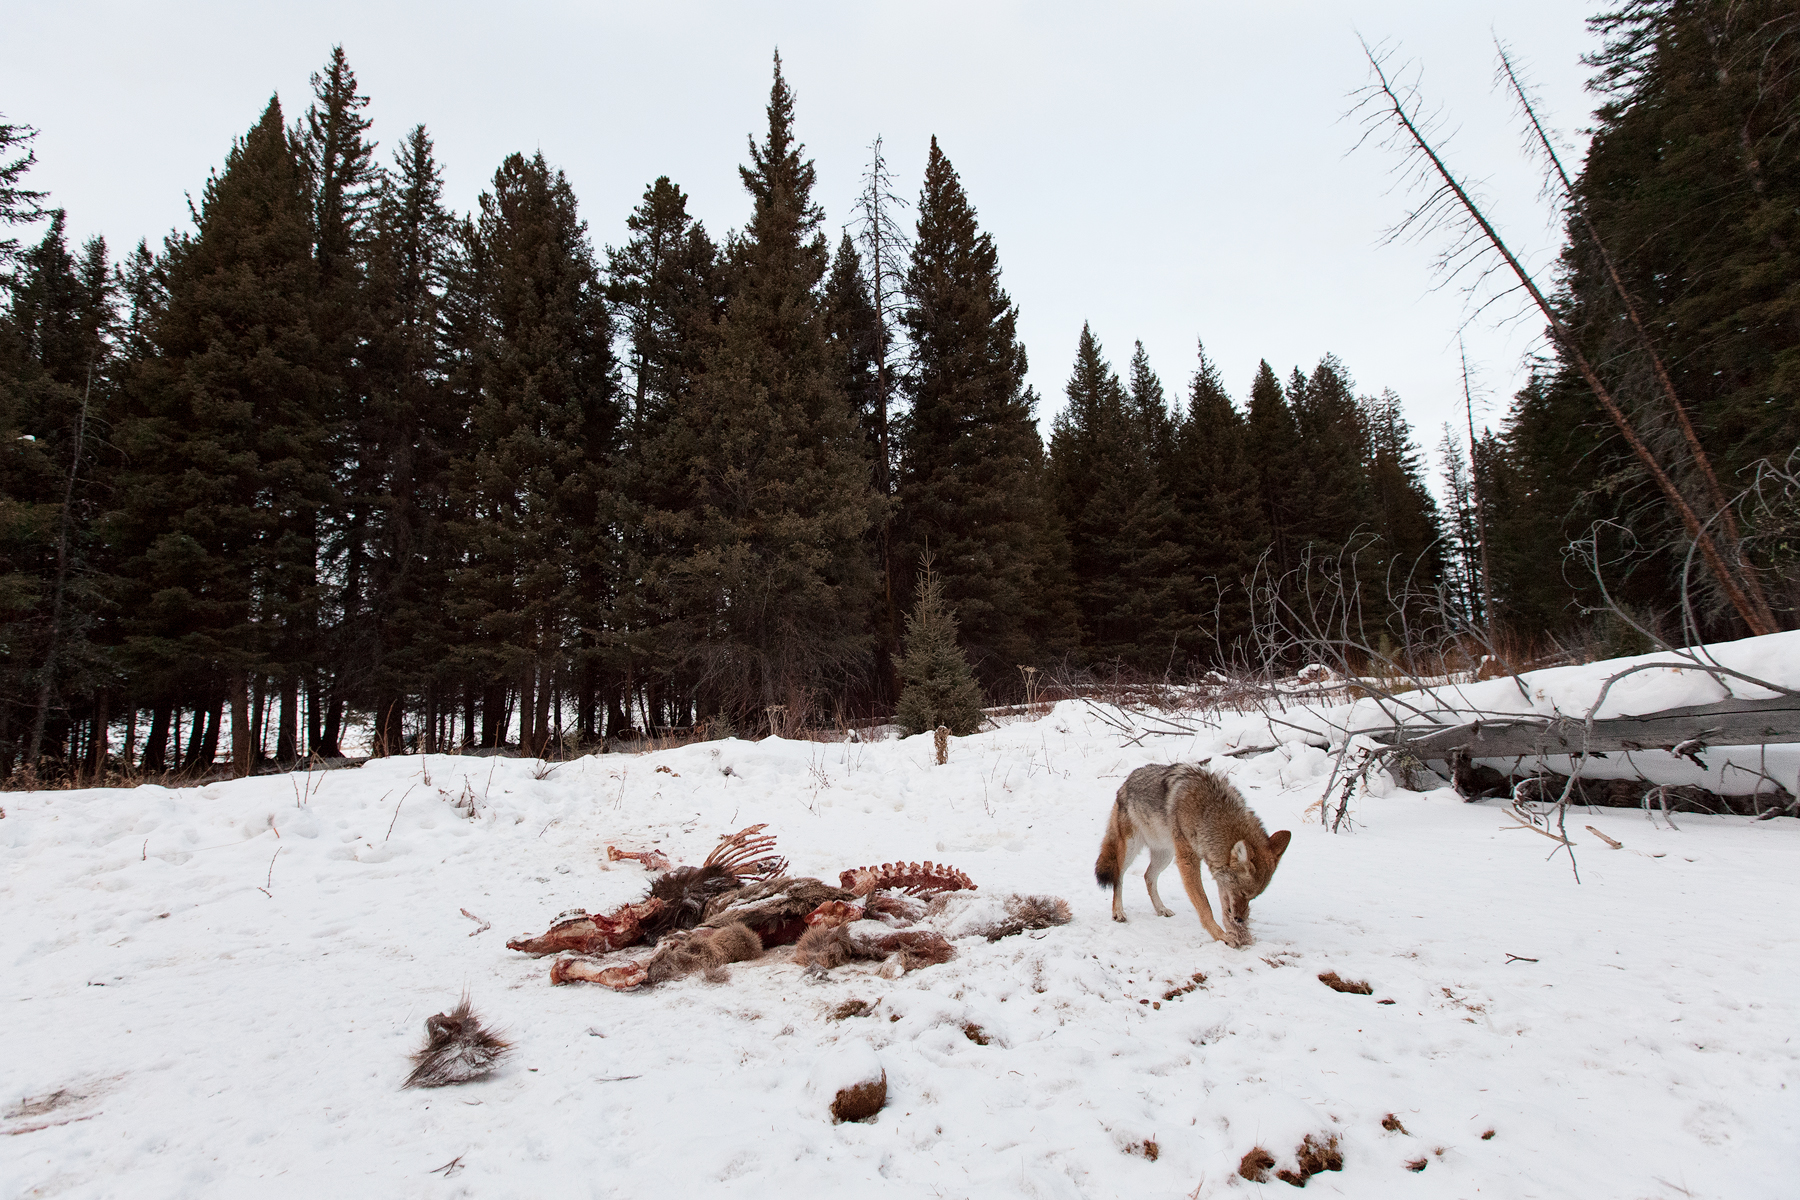 A Coyote scavenges a cow Elk carcass on a mild December day. Taken in Montana, USA.   Image ©Connor Stefanison